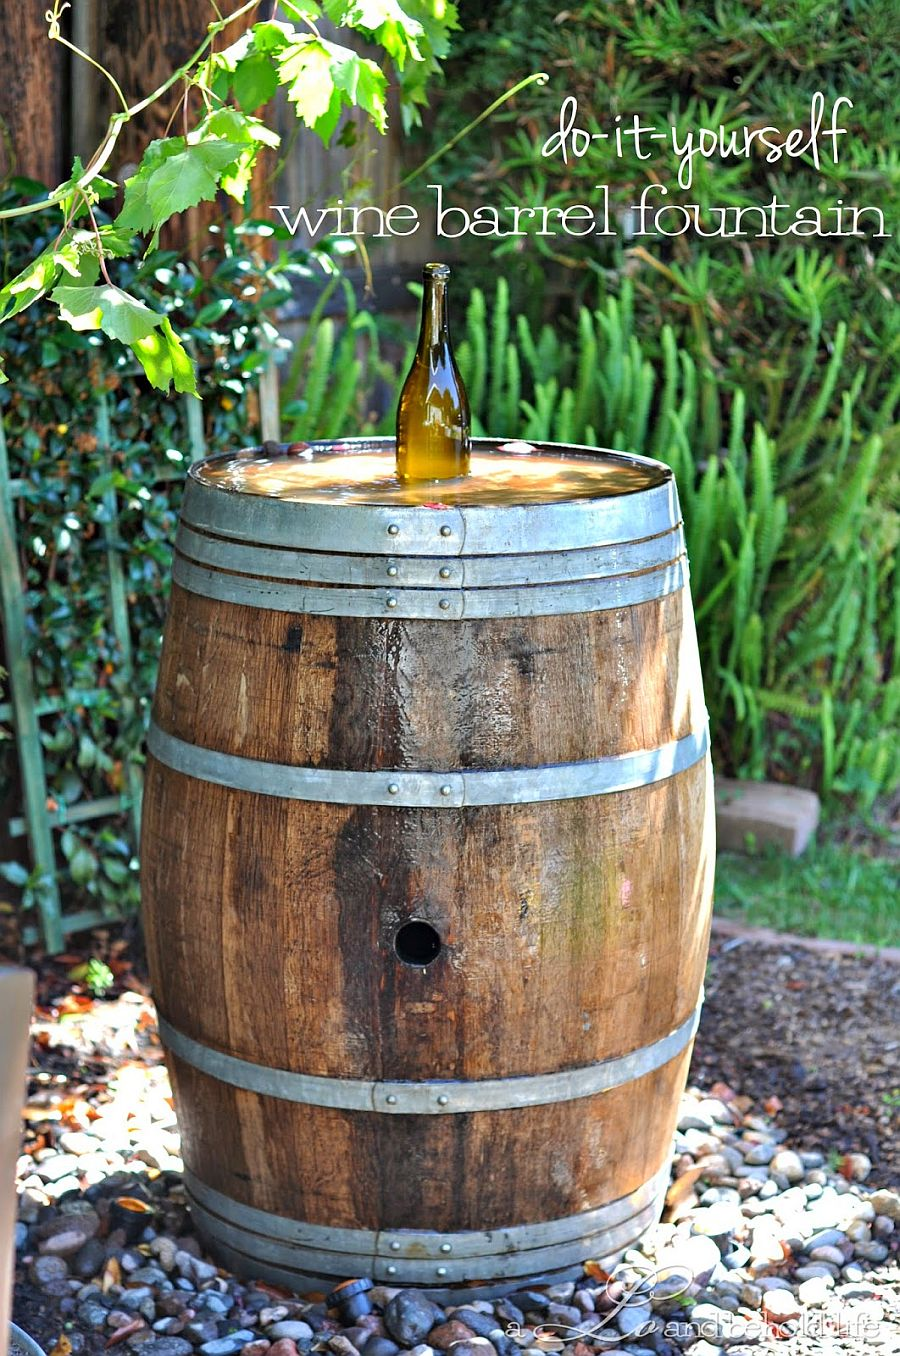 25 DIY Water Features for Your Garden Rustic Backyard Fountain Ideas on rustic gardening, garden fountains, beautiful backyard fountains, classic backyard fountains, tropical backyard fountains, modern backyard fountains, unique backyard fountains, elegant backyard fountains, large backyard fountains, wood backyard fountains, small backyard fountains, bird baths and fountains,